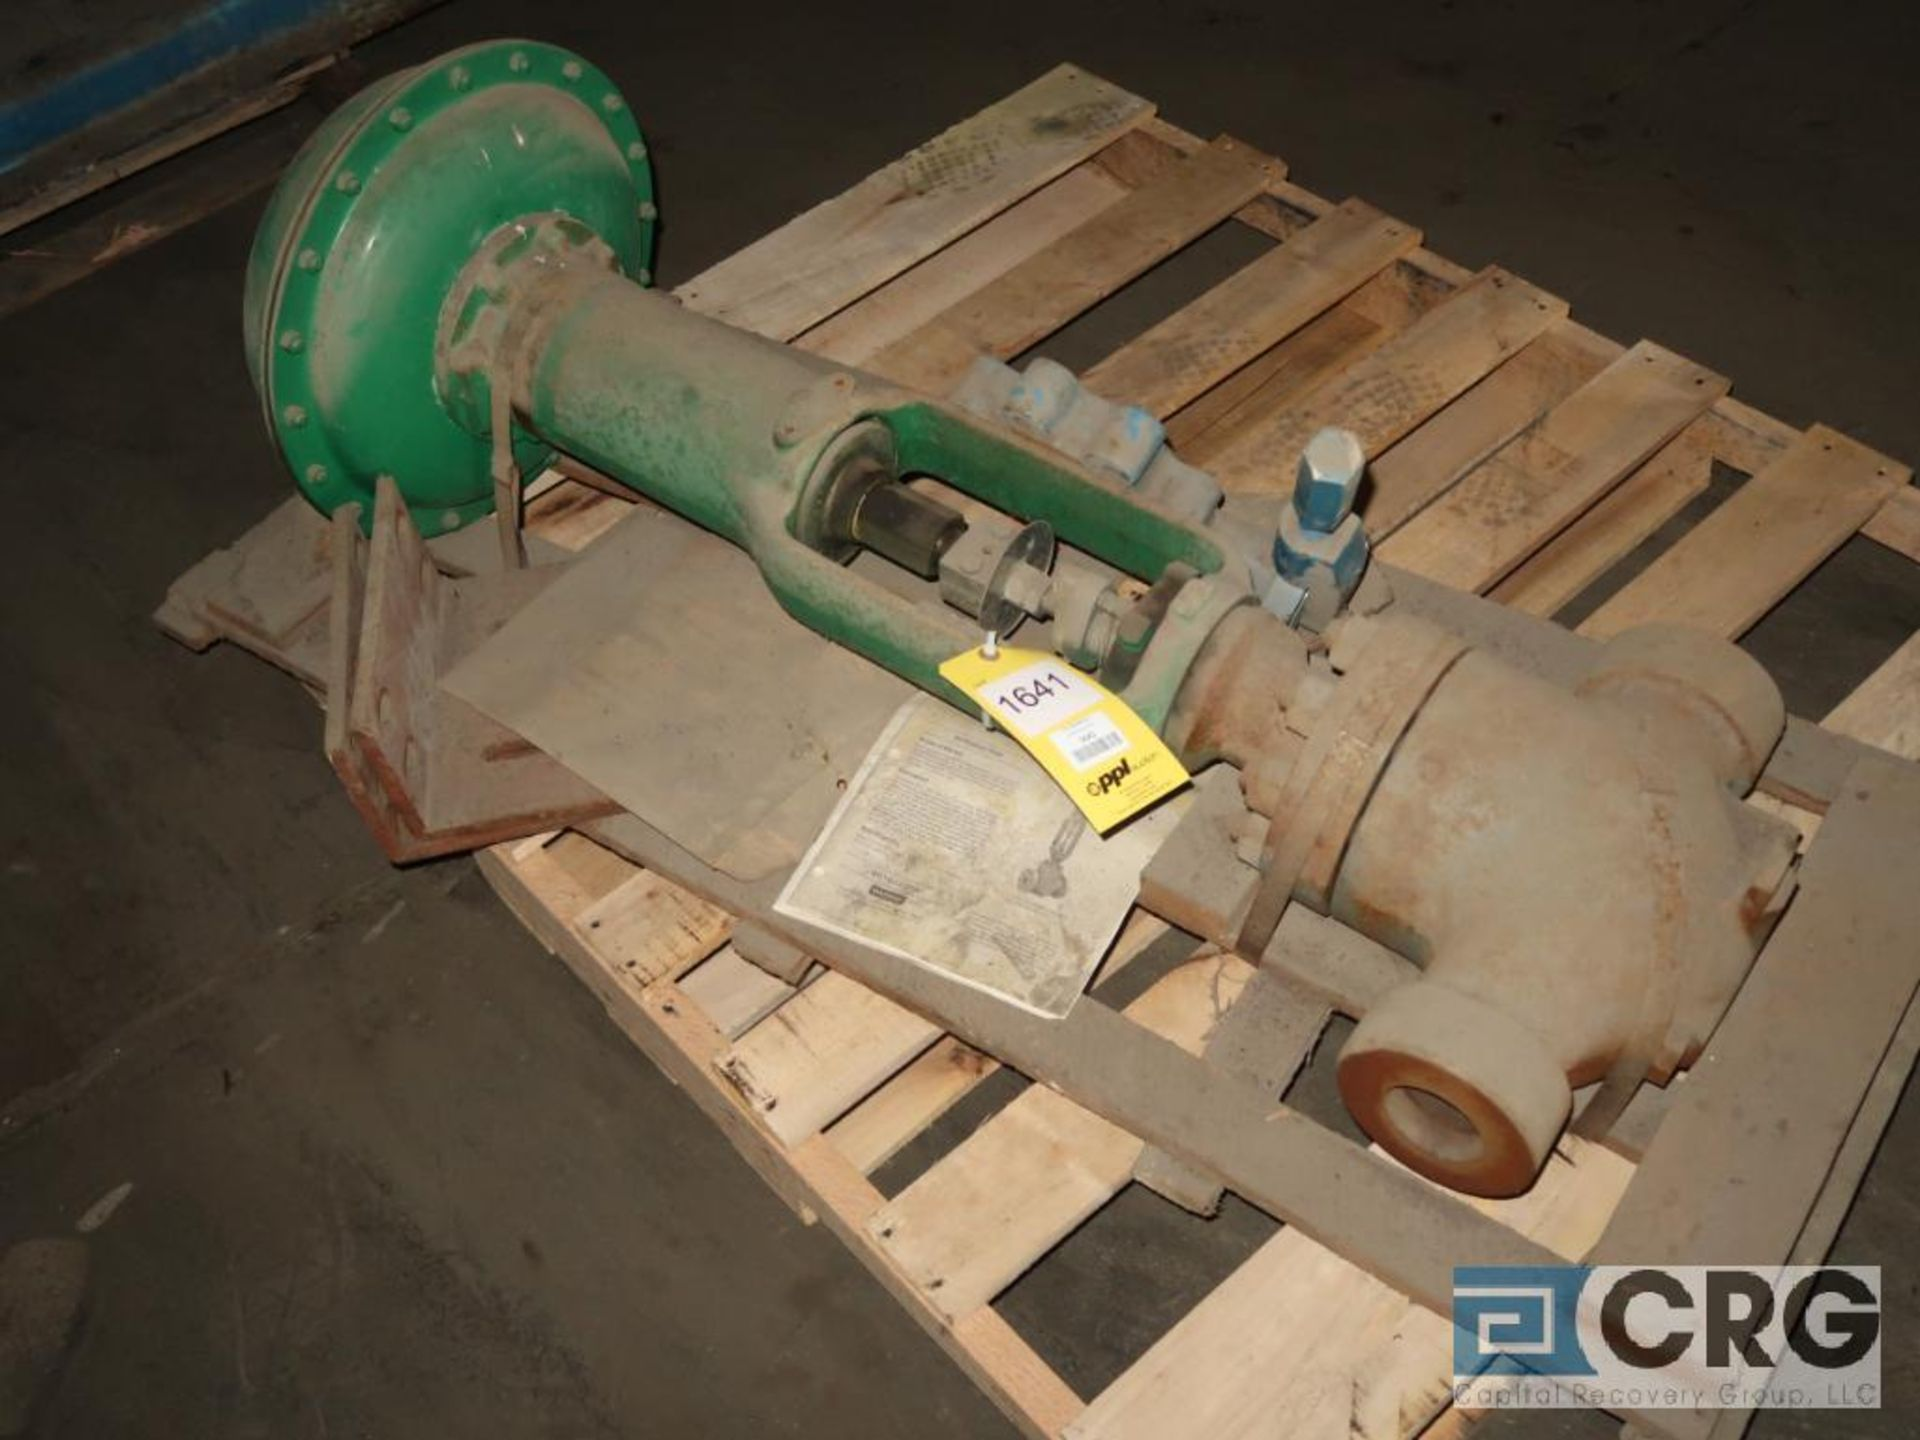 Fisher 667 2 1/2 in. actuator ball valve, 65 psi, s/n 8968916 (Off Site Warehouse) - Image 2 of 2